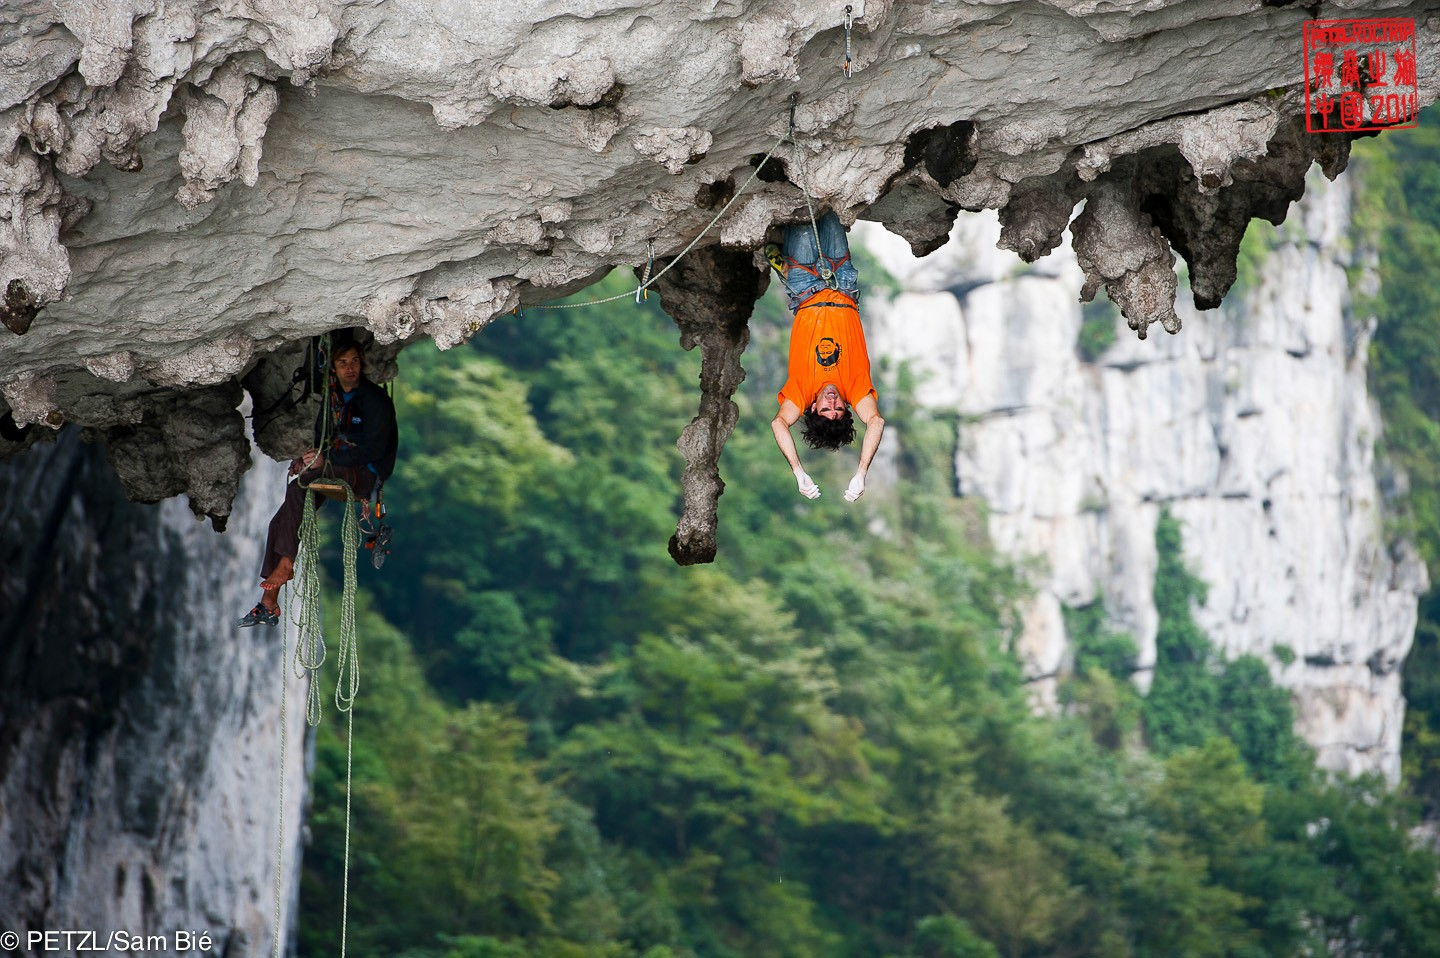 Dani Andrada & Chris Sharma in the Great Arch - Gétu Hé - Petzl RocTrip China 2011 ©Sam Bié